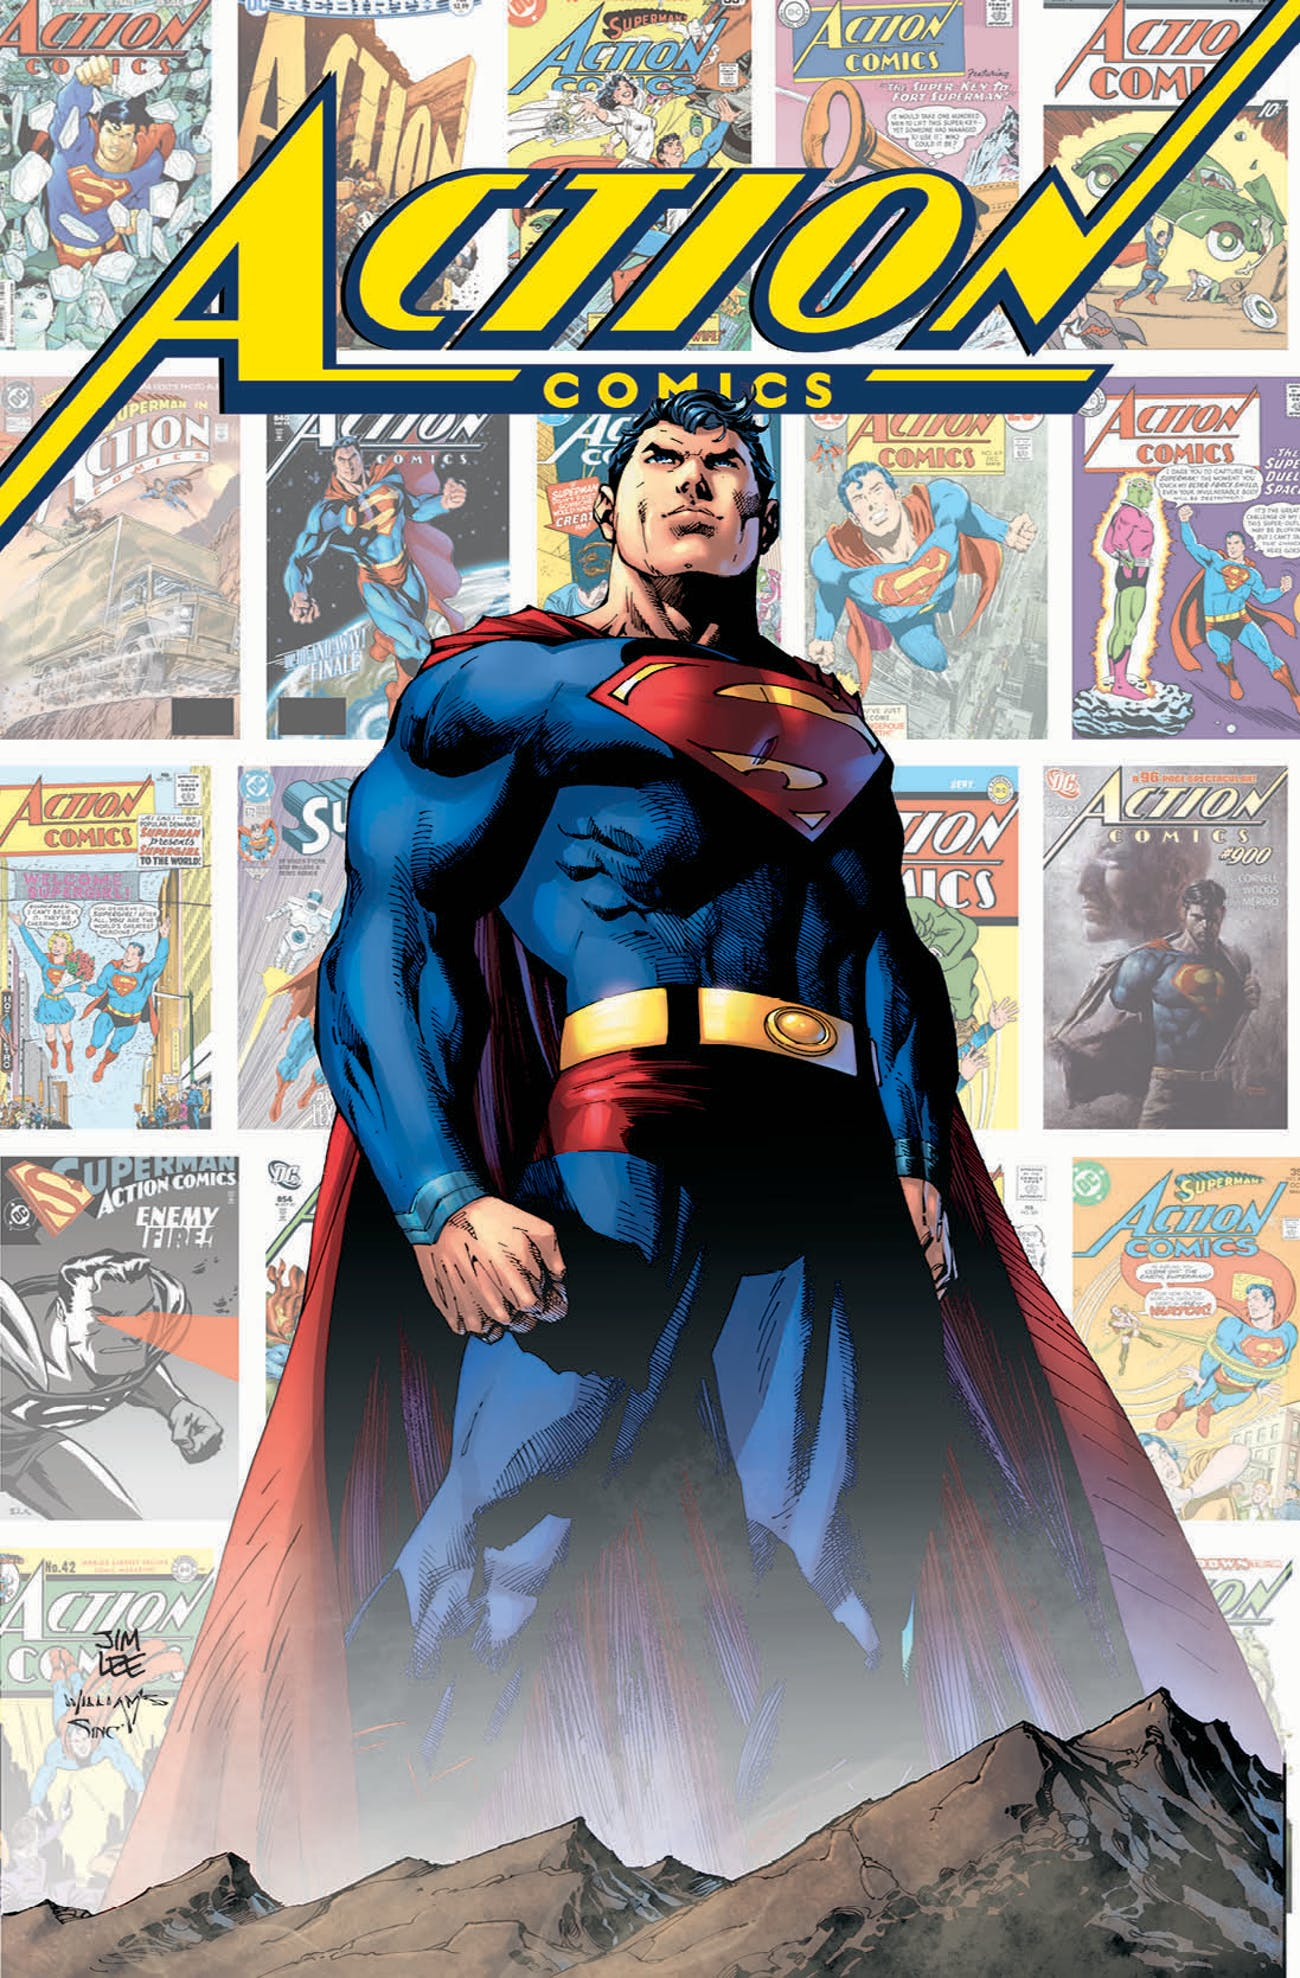 Jim Lee DC Superman Comics